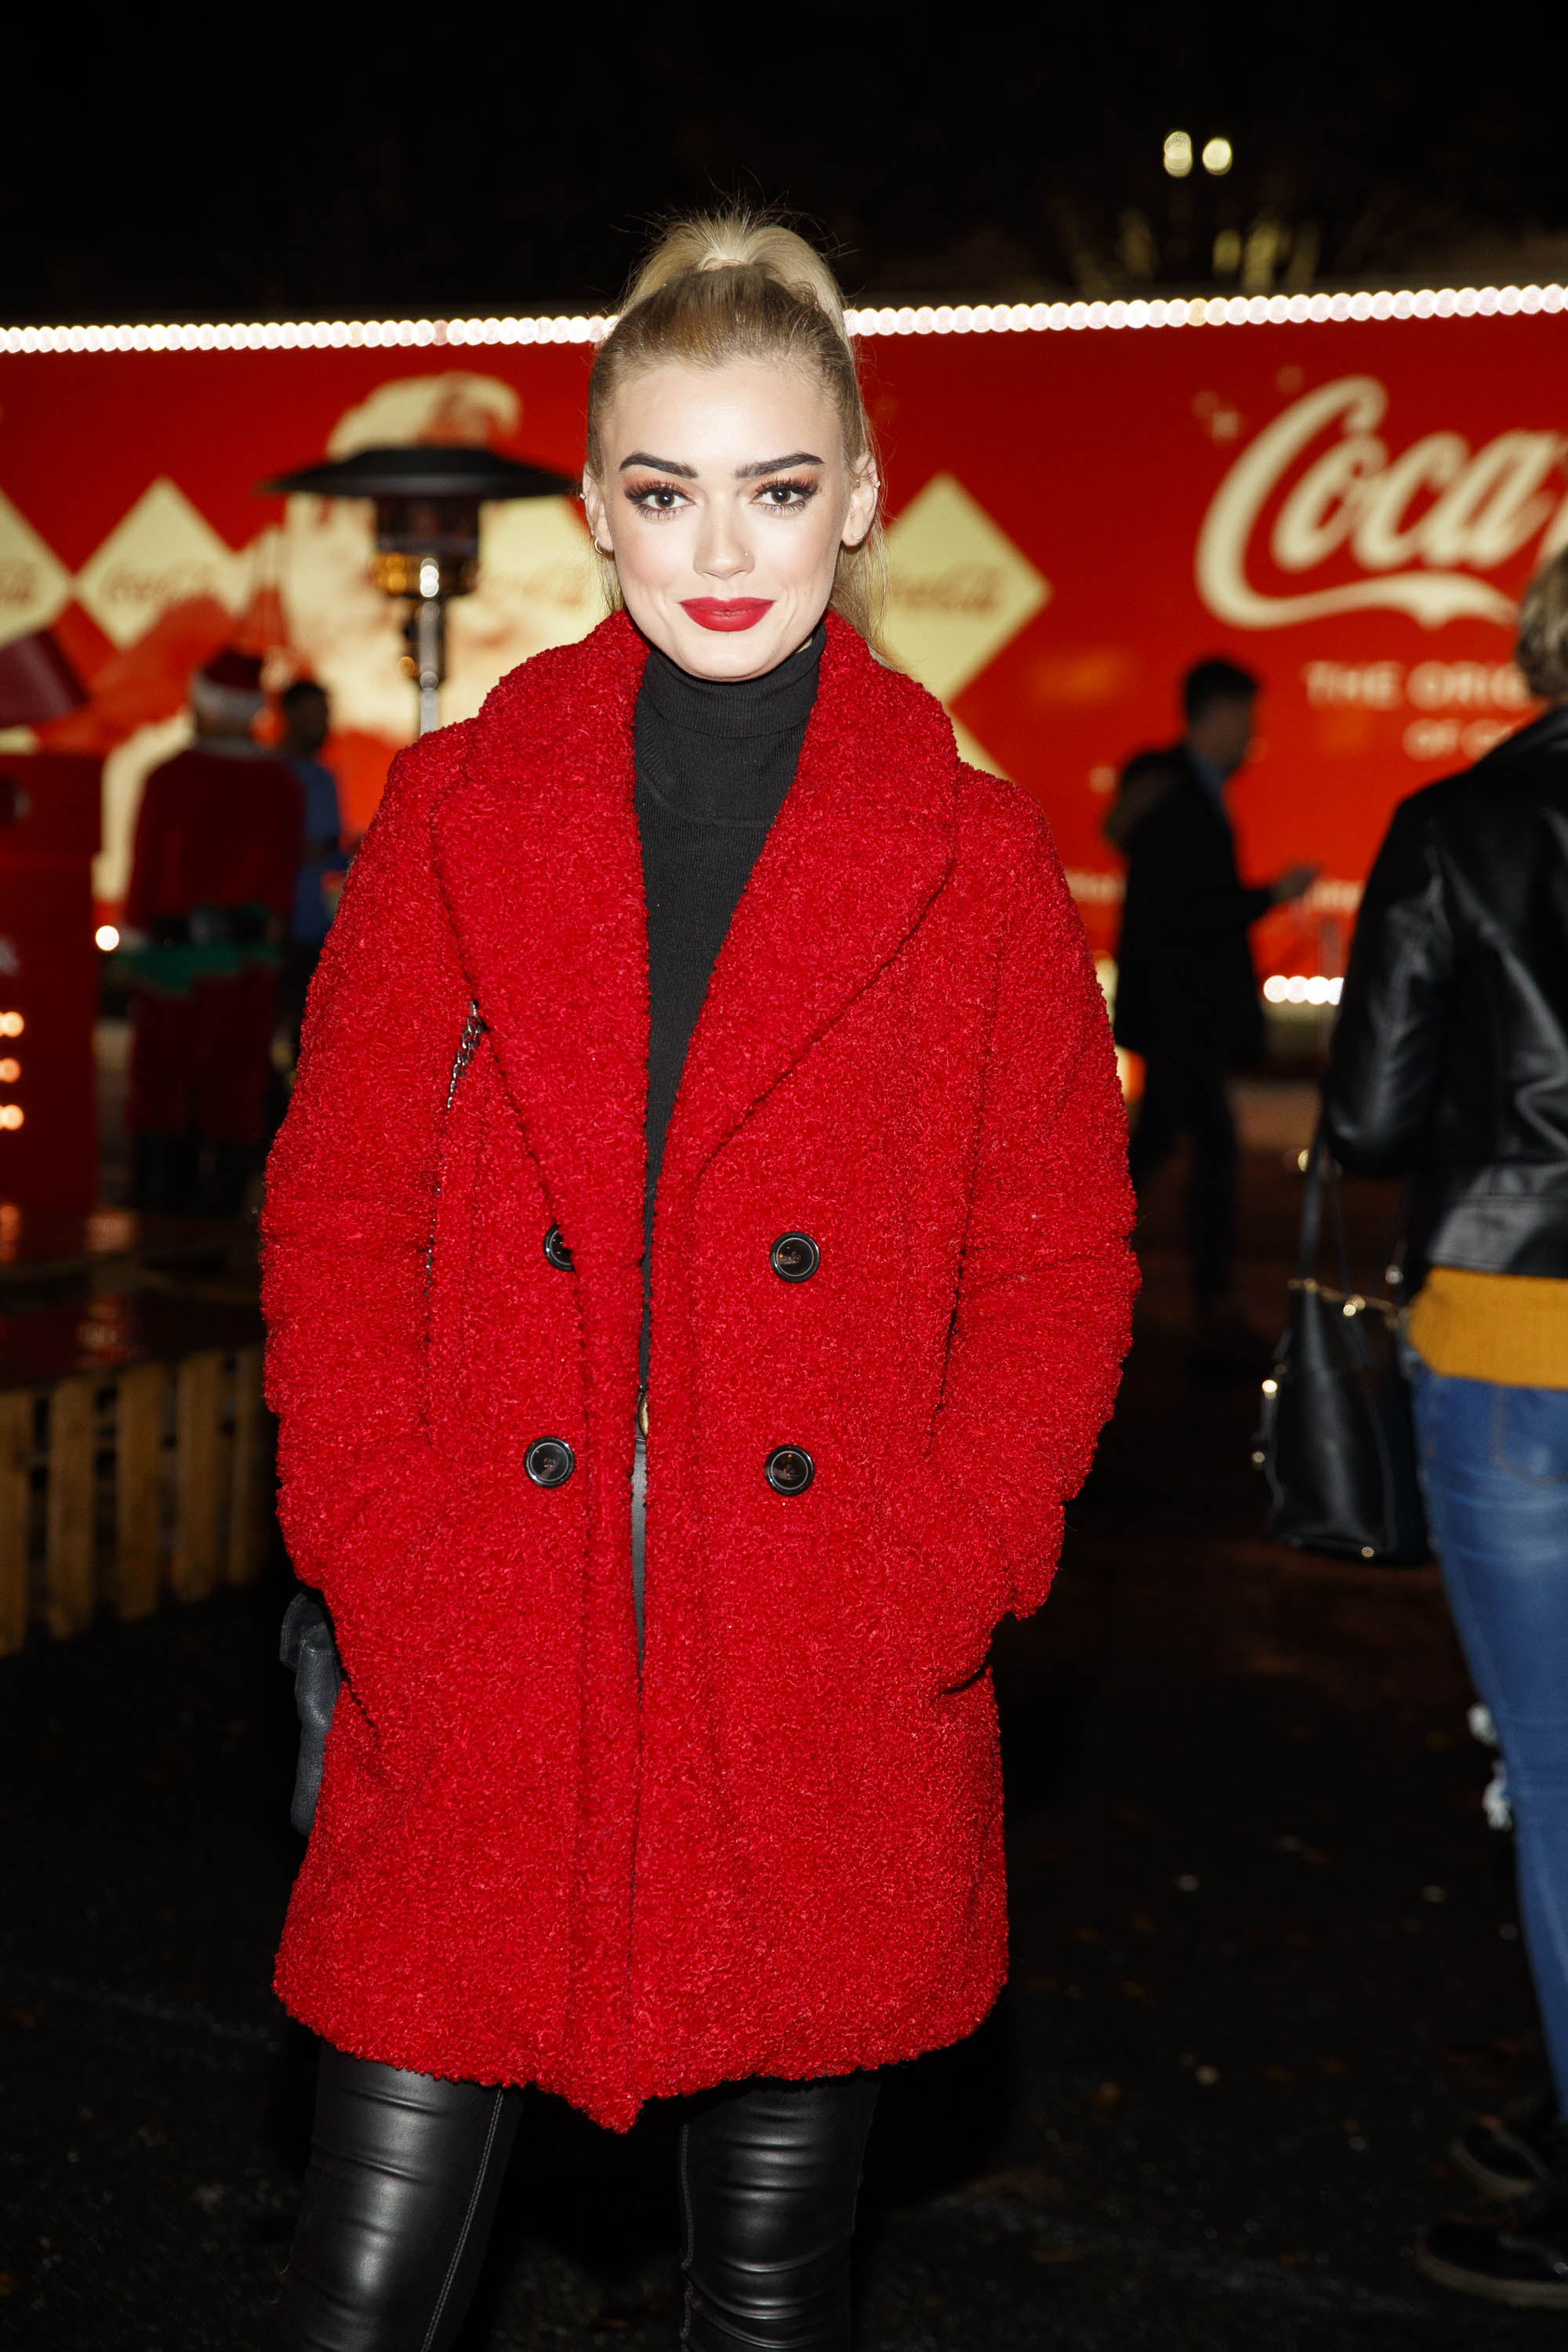 Jo Archbald pictured at Coca-Cola's Christmas Truck Tour launch which took place Monday 25th November at the RDS, Dublin. Photo: Andres Poveda